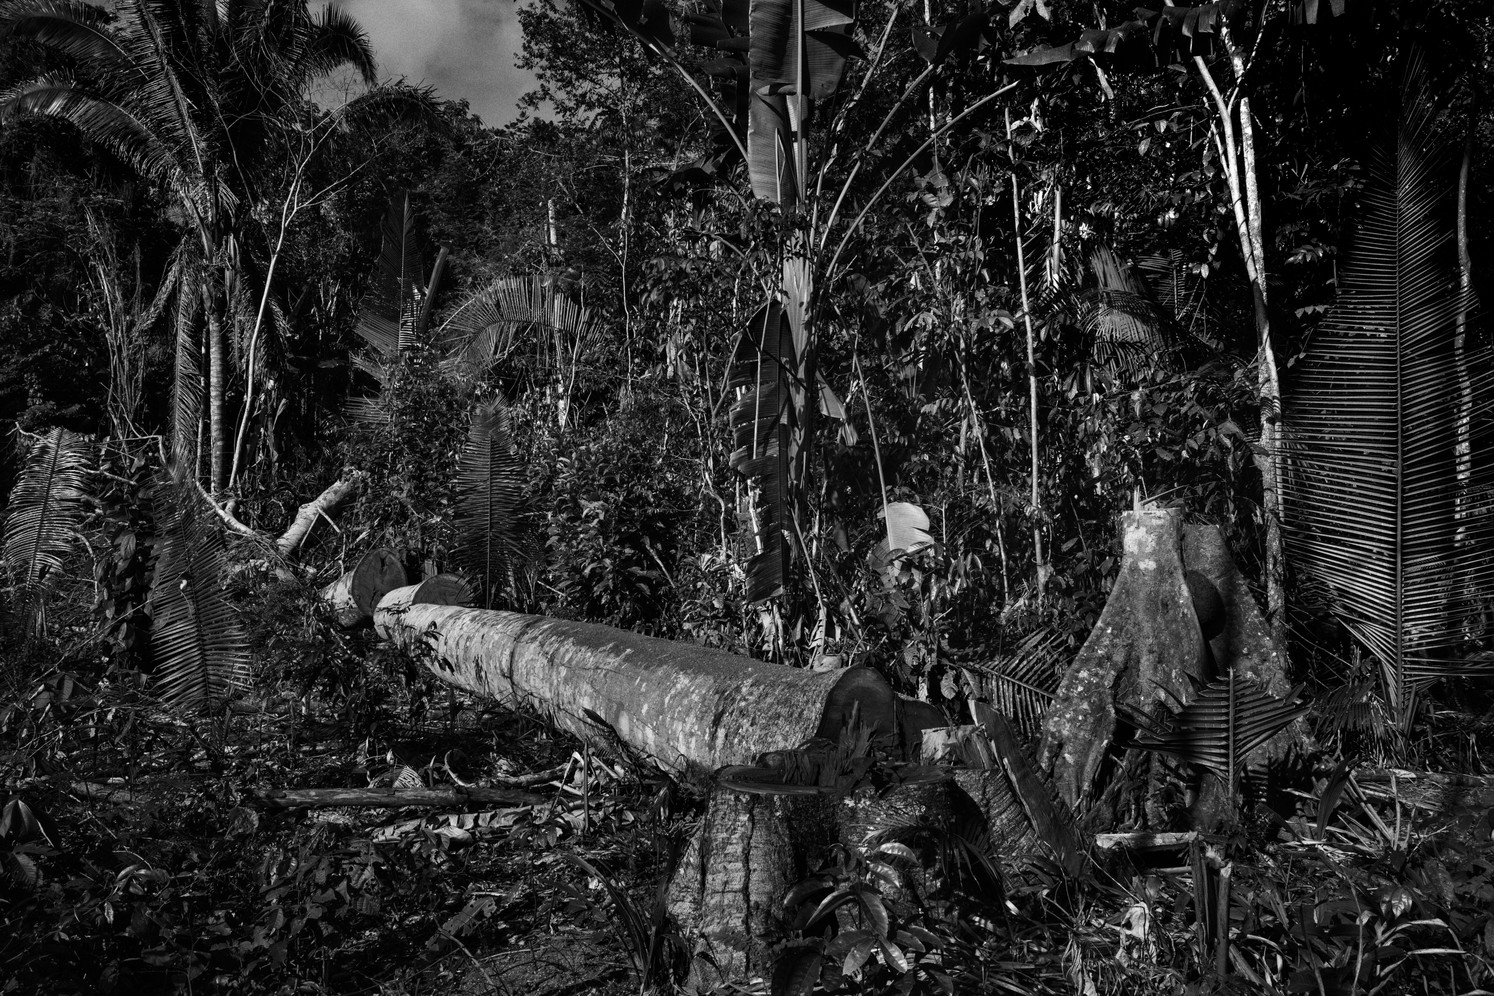 Toppled trees inside of landless peasant camp occupied by the Liga dos Camponeses Pobres – Poor Peasants League, or LCP – movement in Pau D'Arco, Pará state. The group fights for agrarian reform across Brazil's Amazon states where land ownership is extremely concentrated.